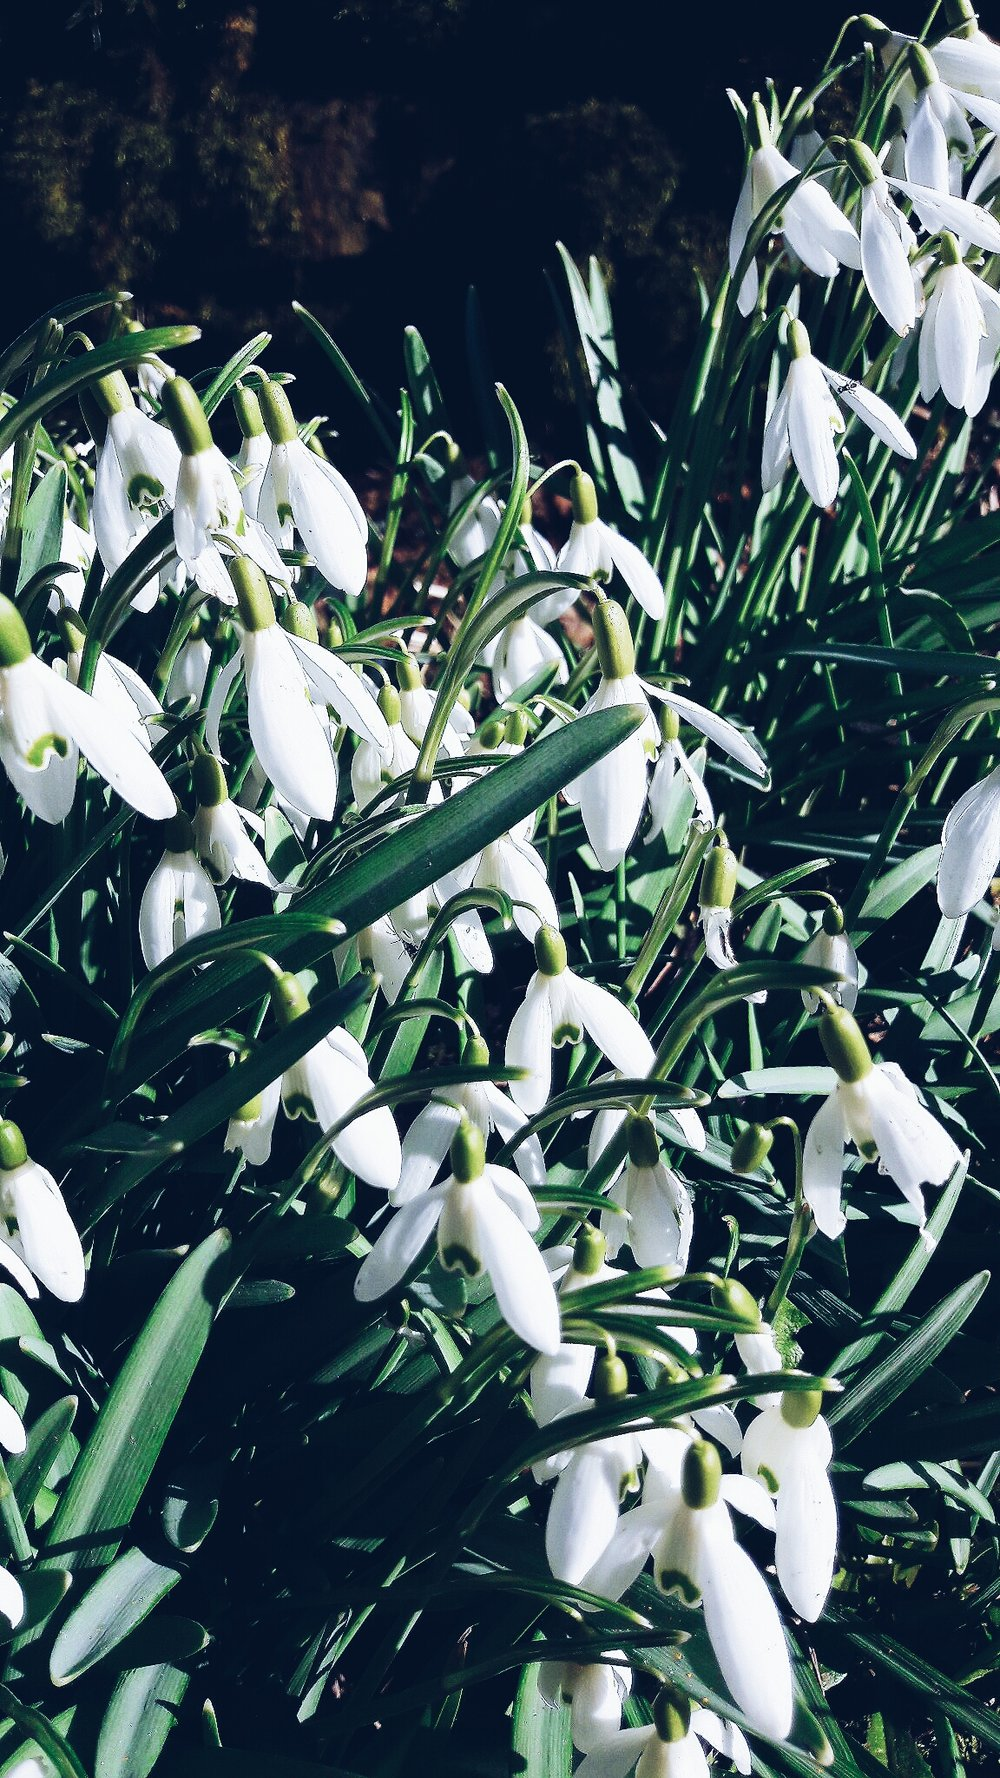 Snowdrops in the Peak District